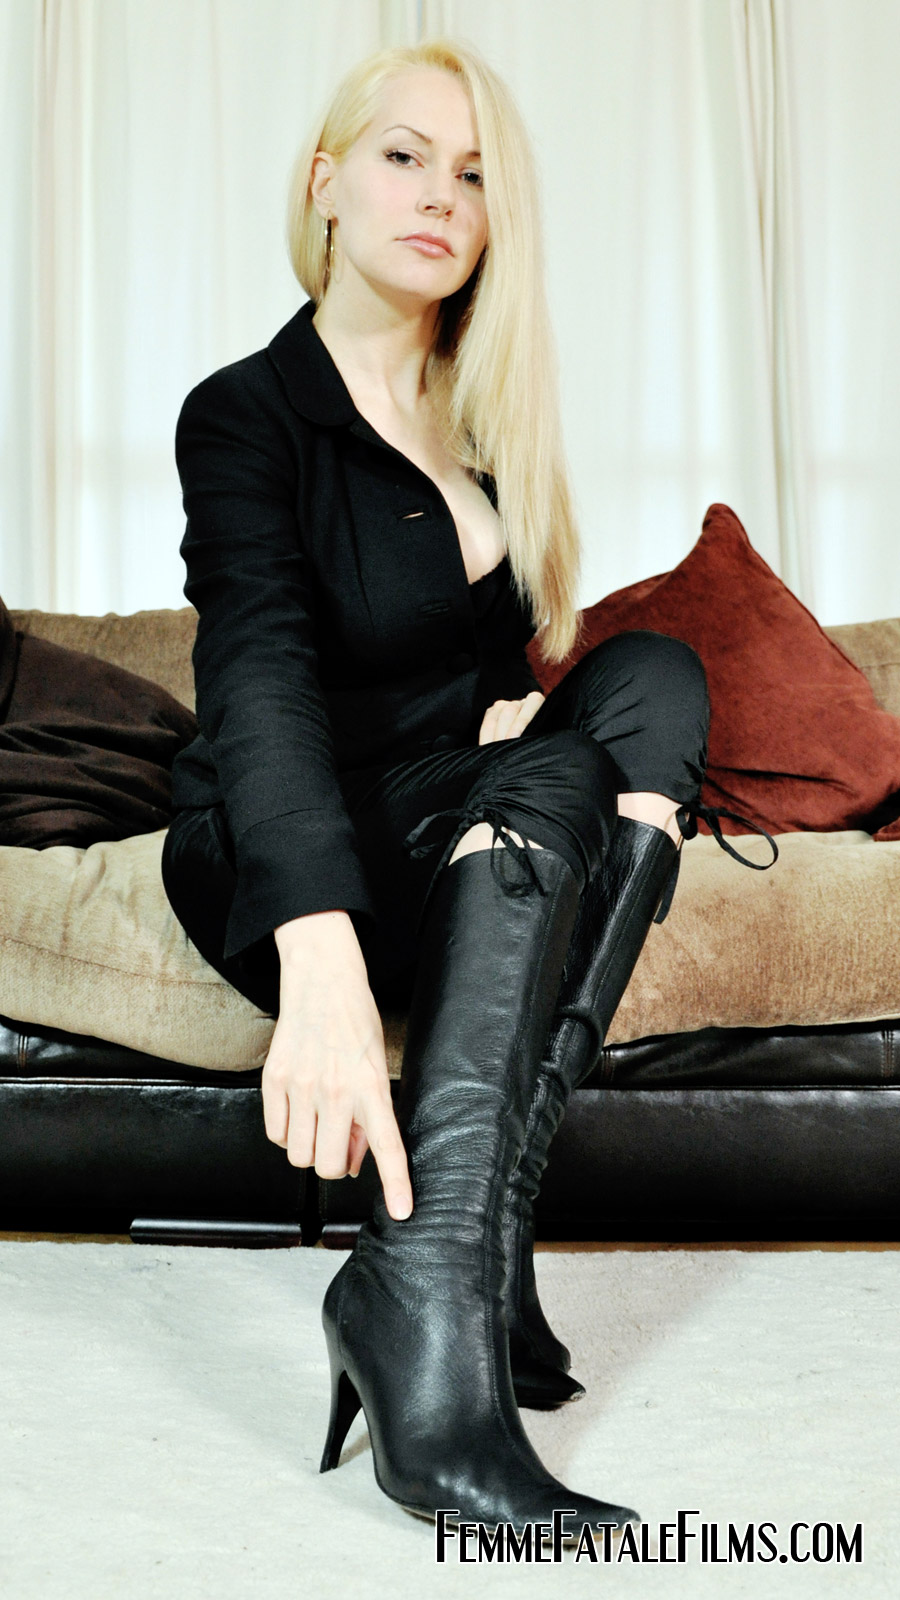 Suggest you lady sonia and lick my boot